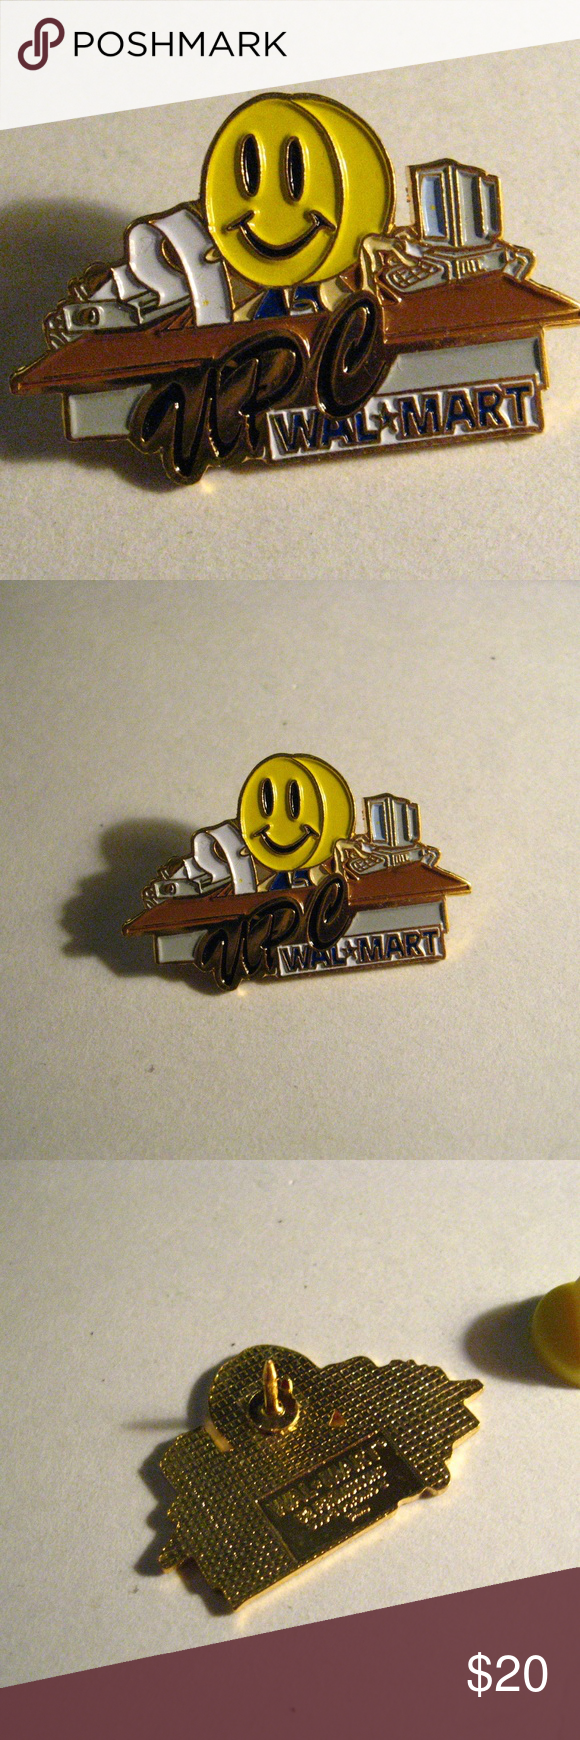 Walmart Store UPC Smiley Face Worker Lapel Pin Gold Tone Metal with